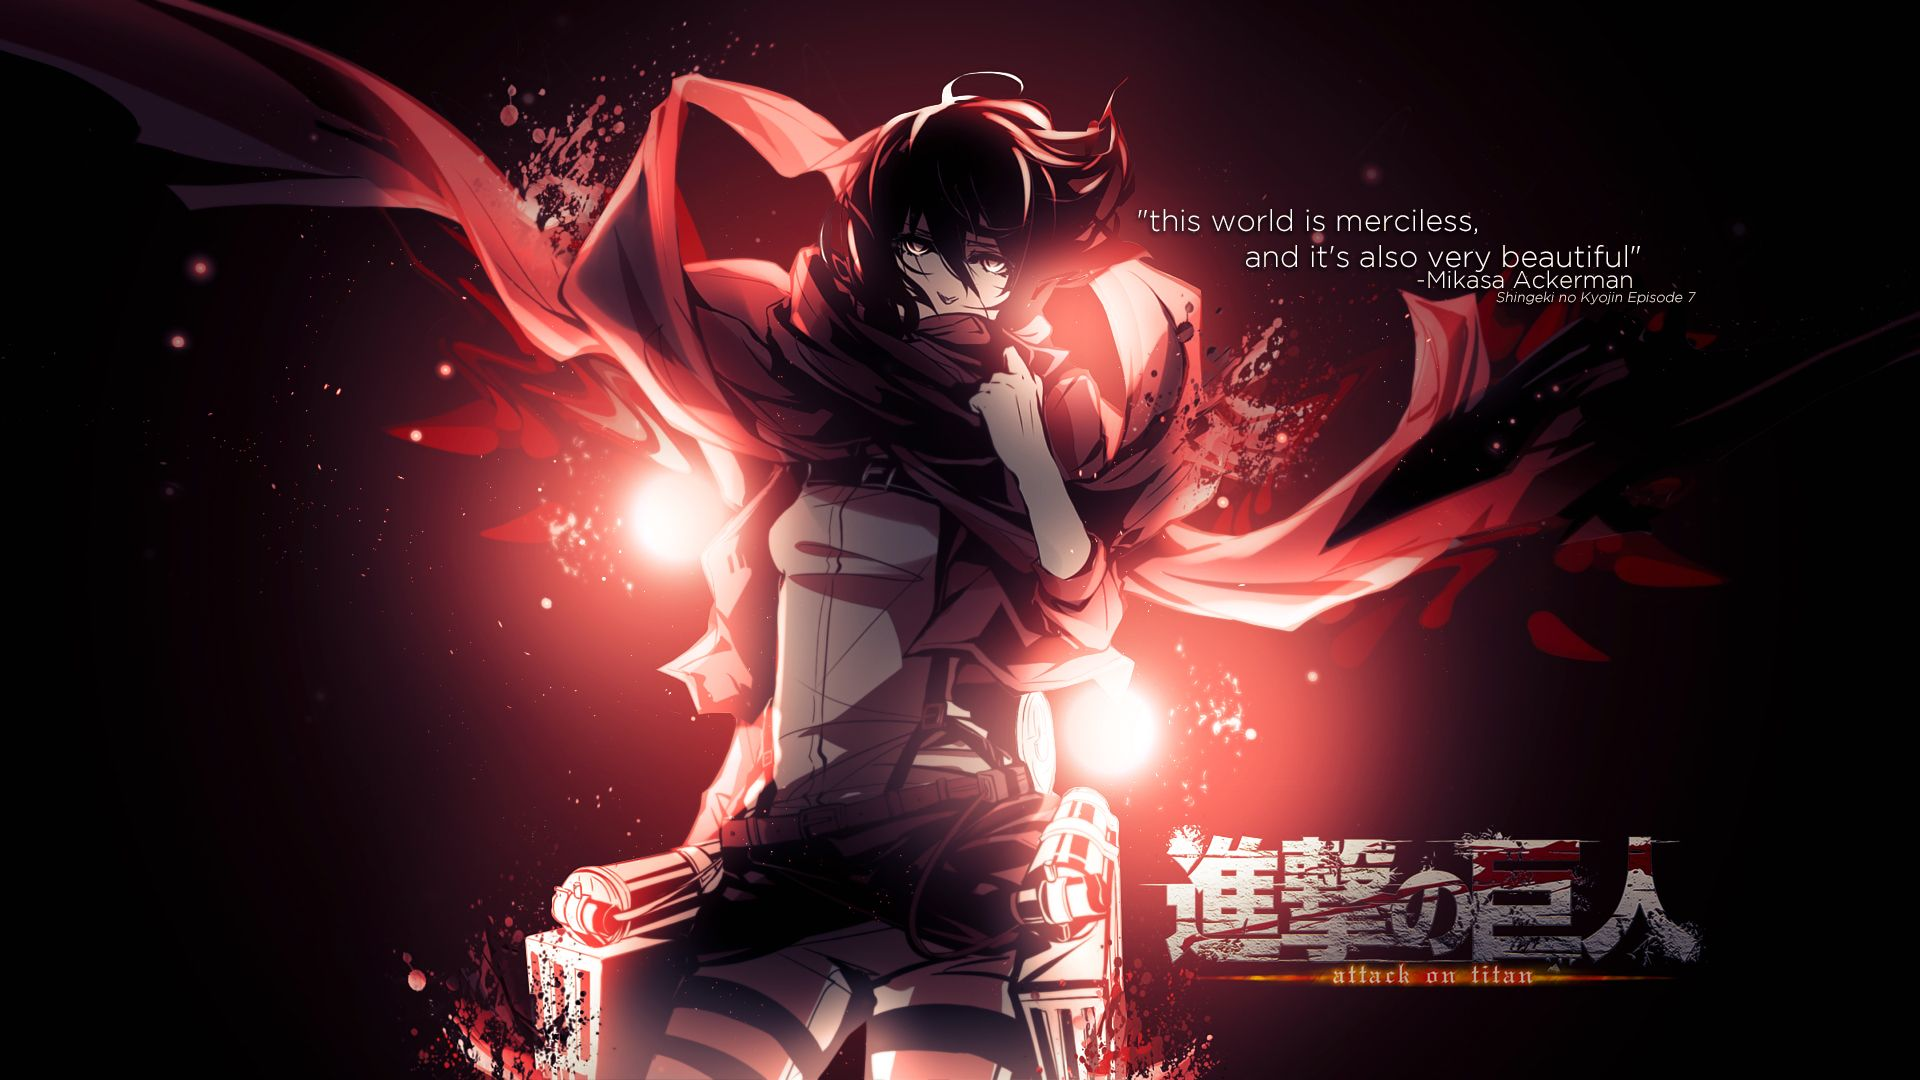 Anime Wallpapers Attack On Titan Anime Wallpapers